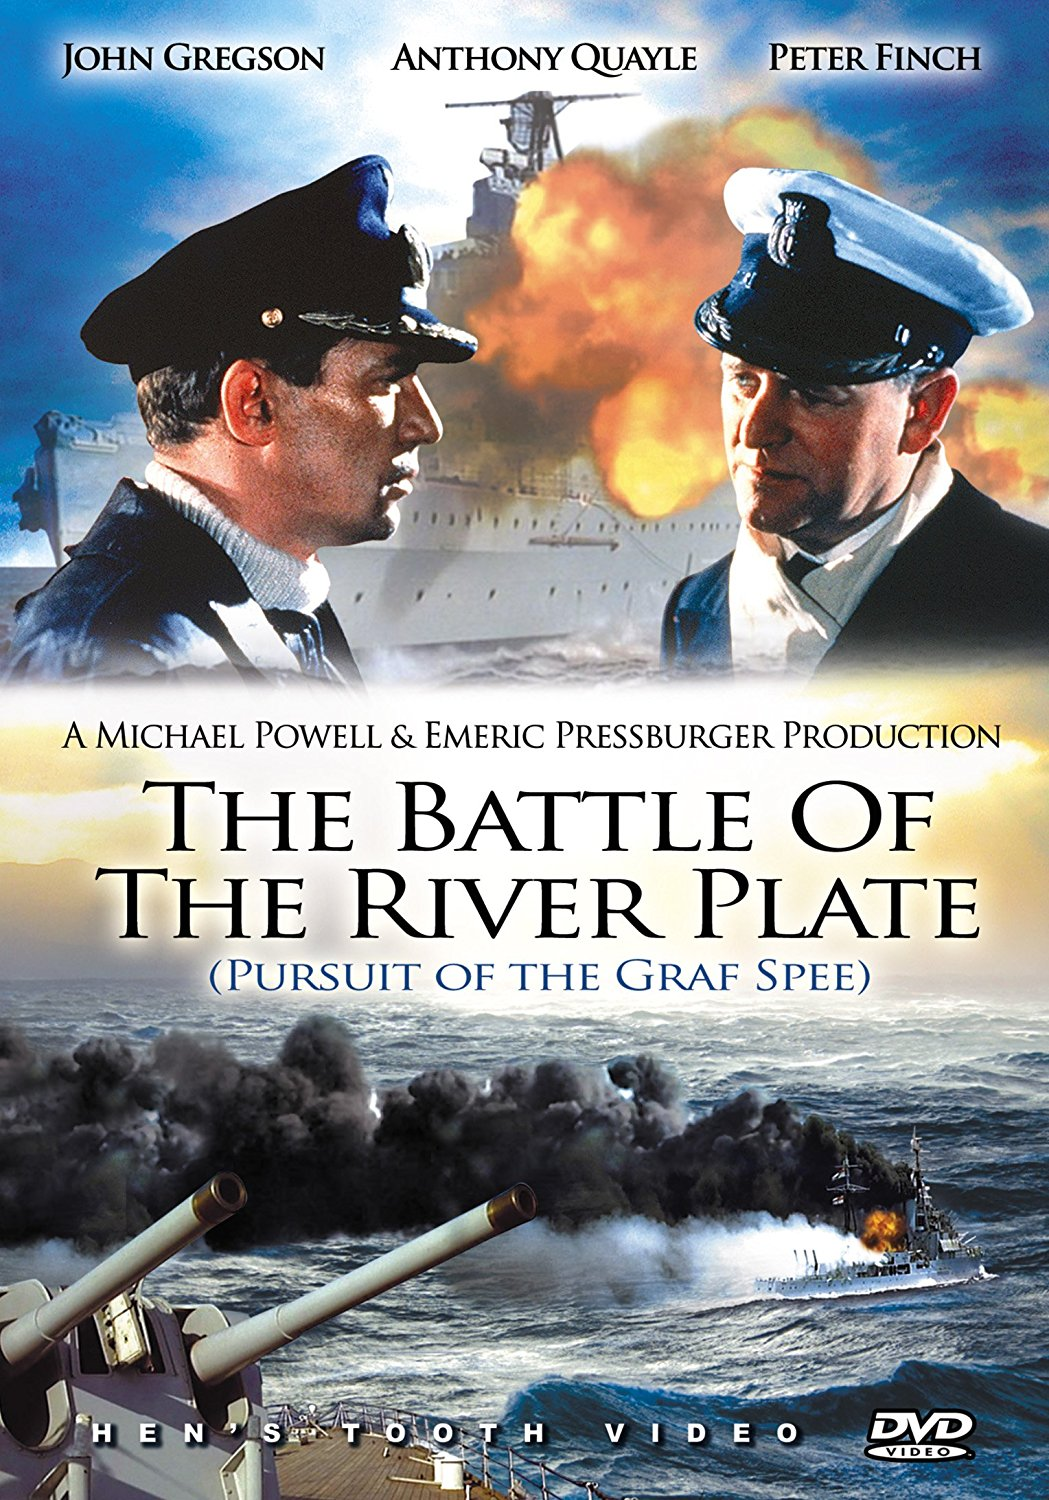 The Battle of River Plate (Pursuit of the Graf Spee)